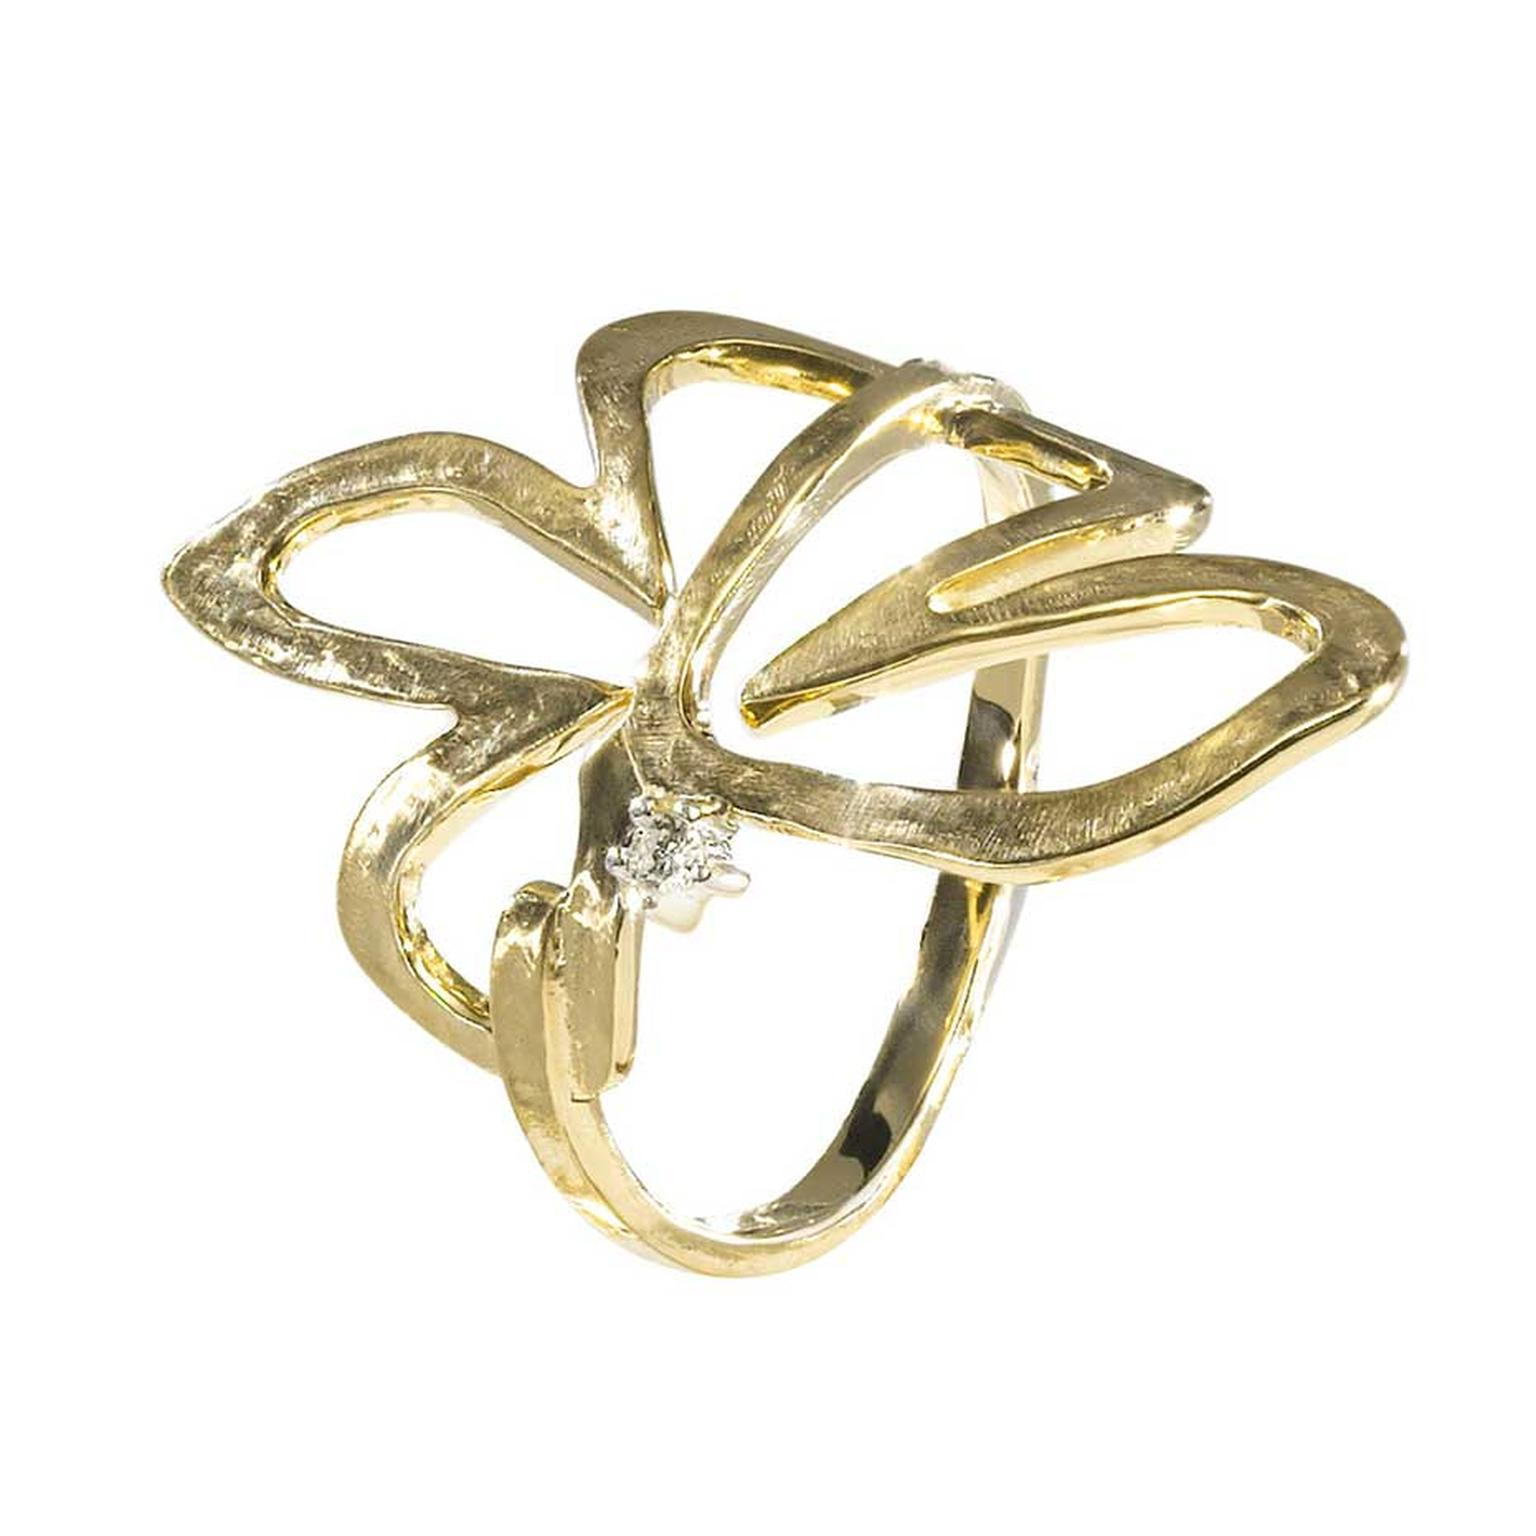 H.Stern's 2014 Oscar Niemeyer collection yellow gold flower ring featuring a single diamond.